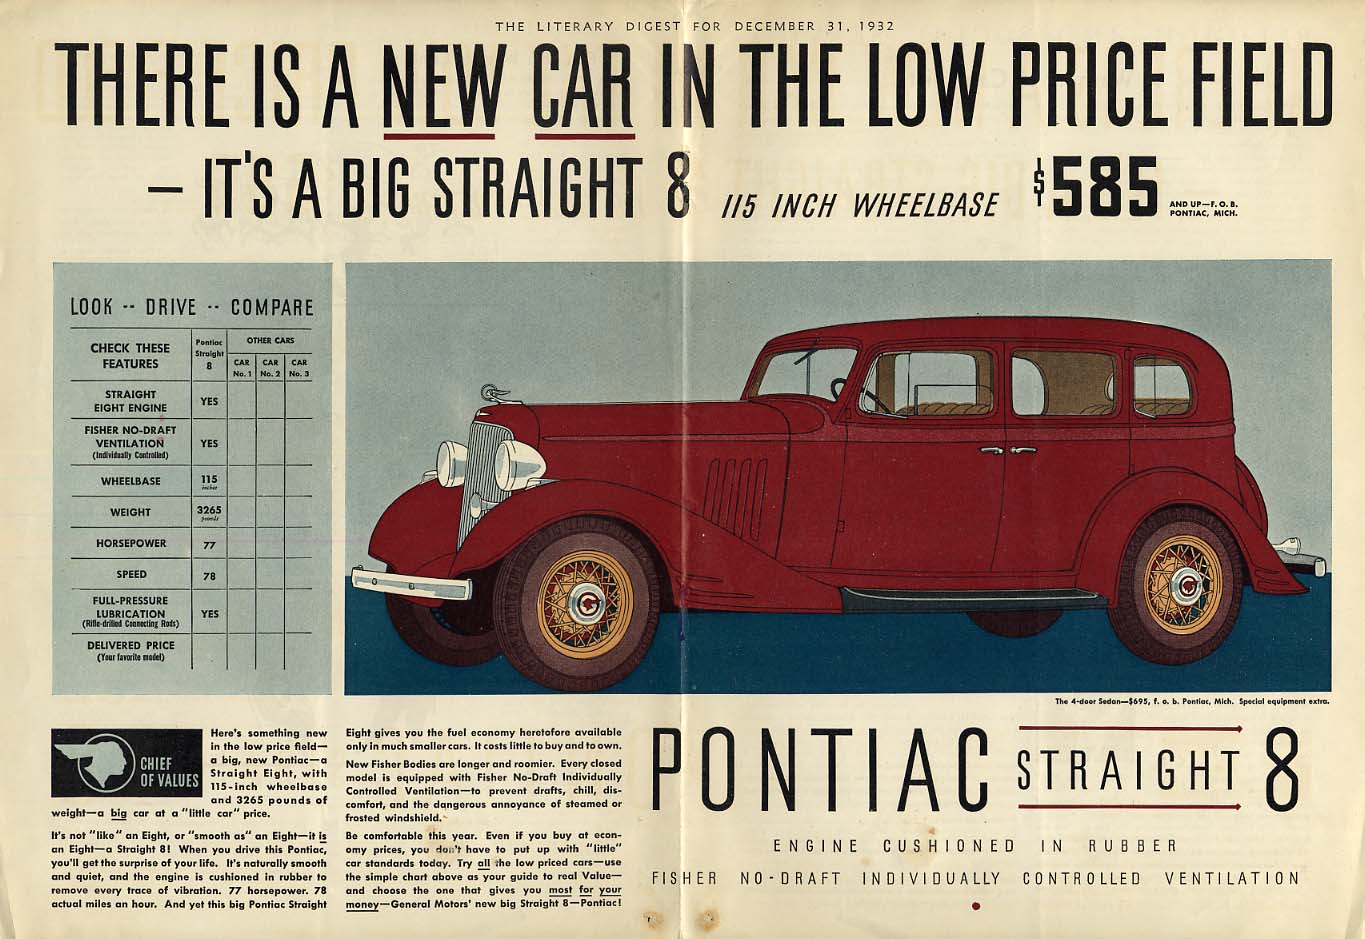 A new car in the low-price field: Pontiac Straight 8 ad 1933 LD